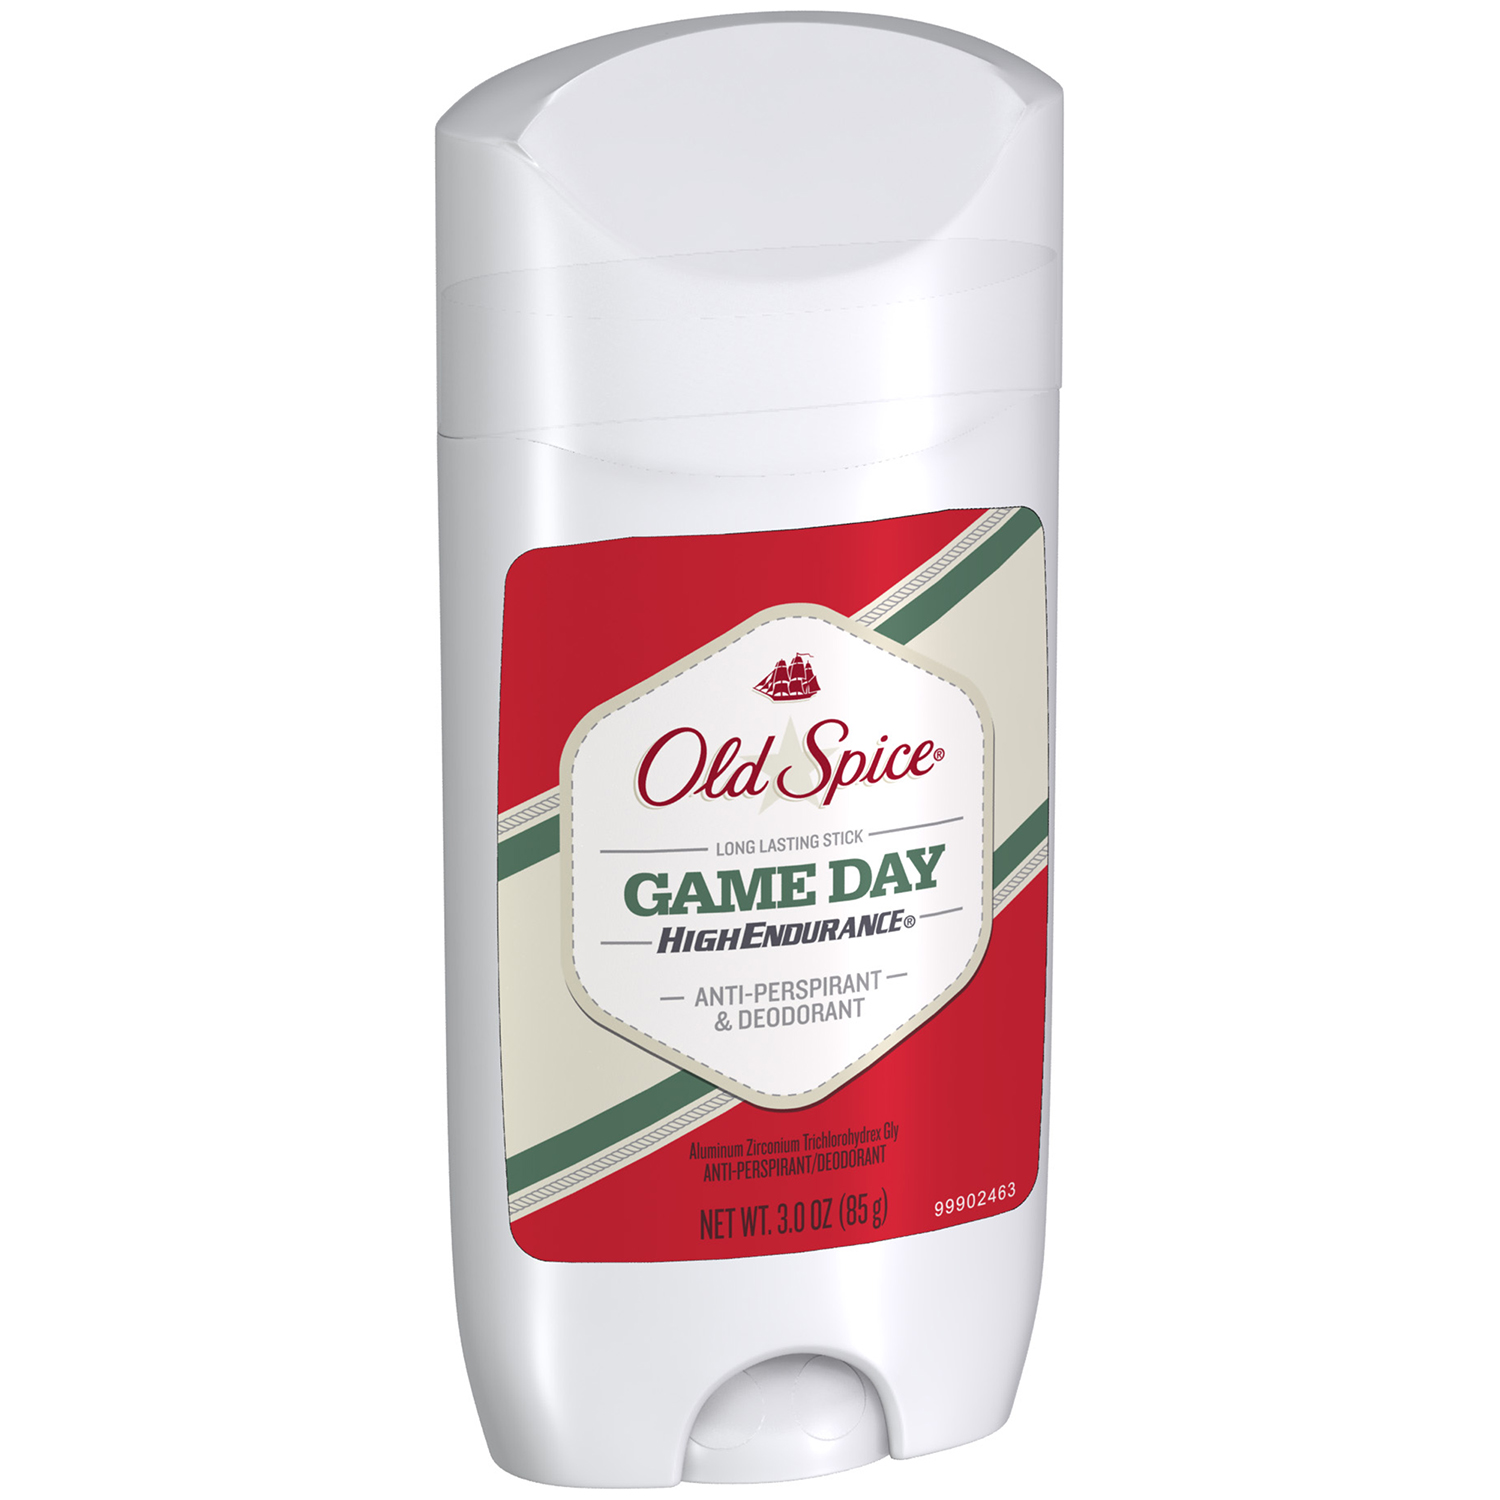 Old Spice® High Endurance® Game Day Anti-Perspirant & Deodorant 3 oz. Stick